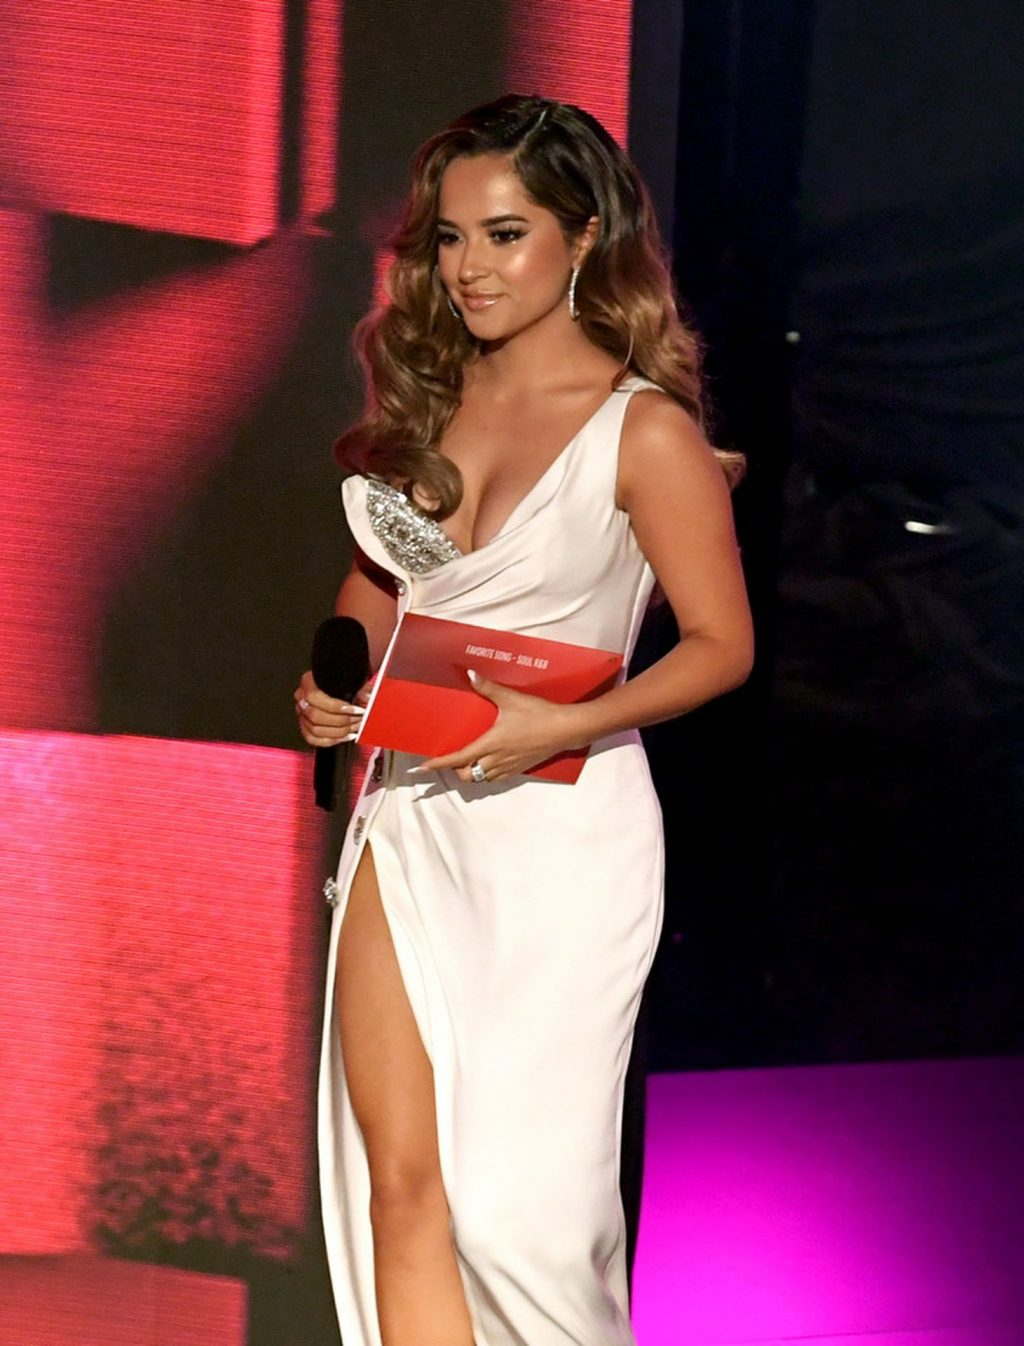 Becky G Shows Off Her Cleavage at the 2020 American Music Awards (16 Photos)